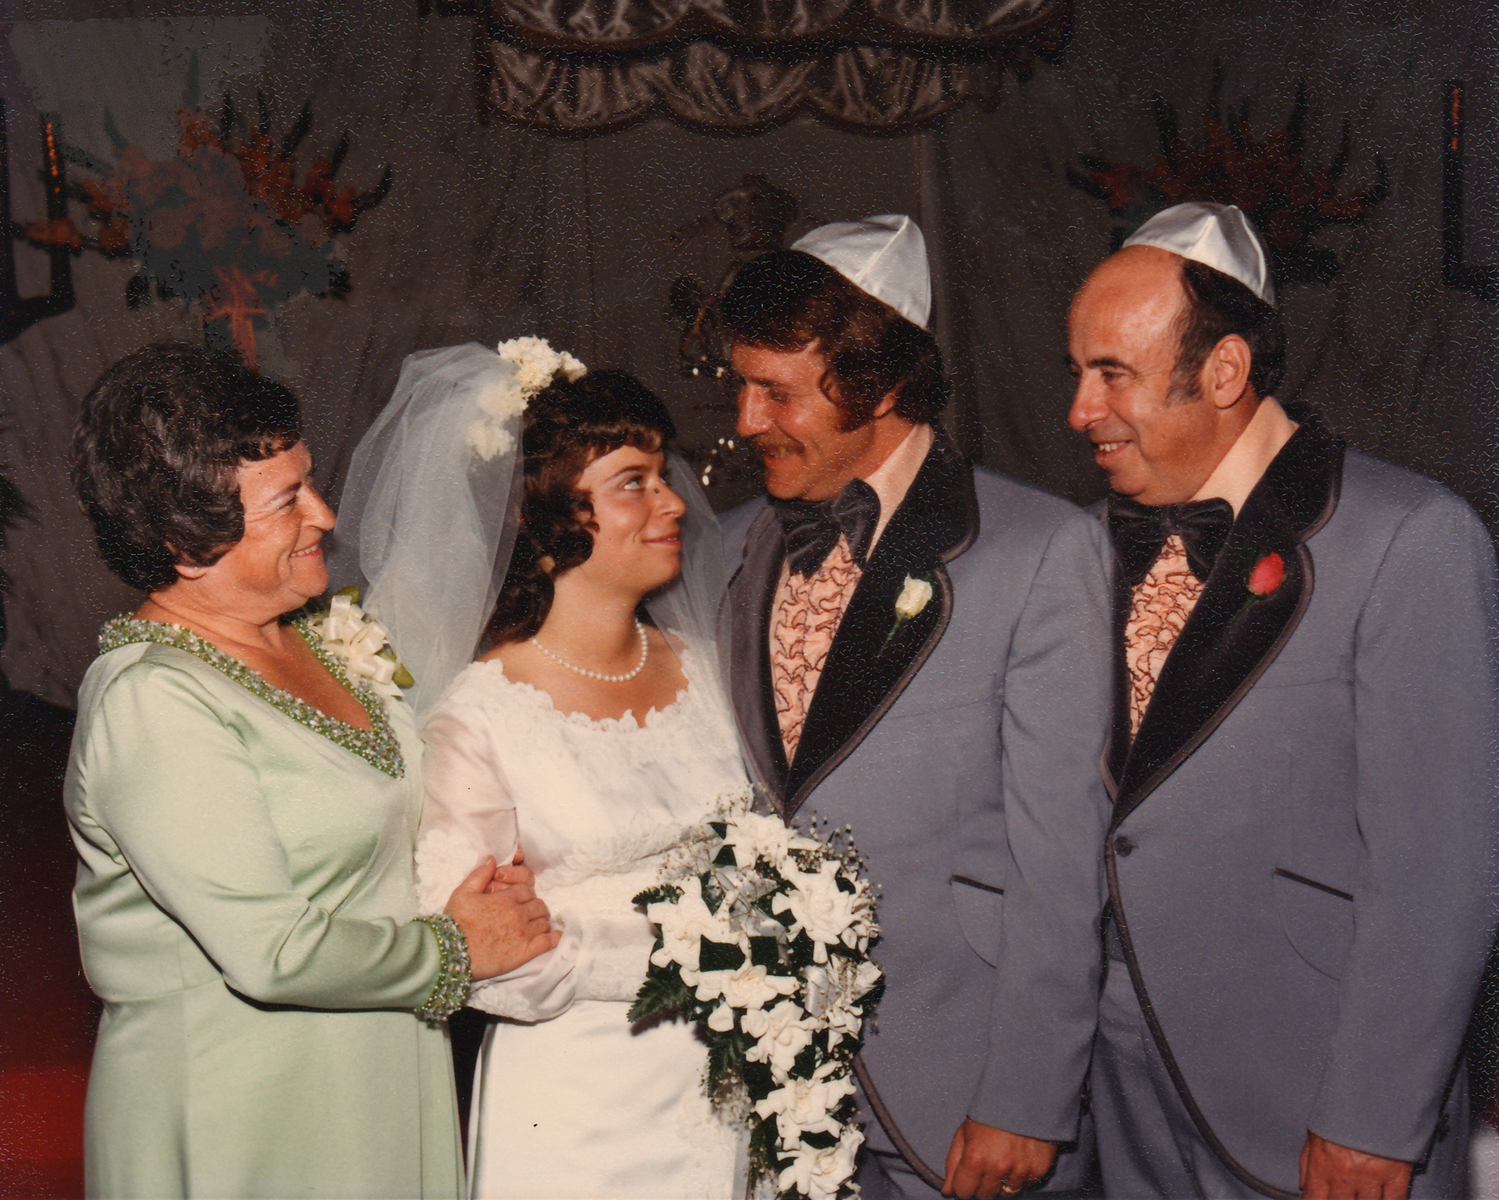 Doreen on her wedding day, 1973.